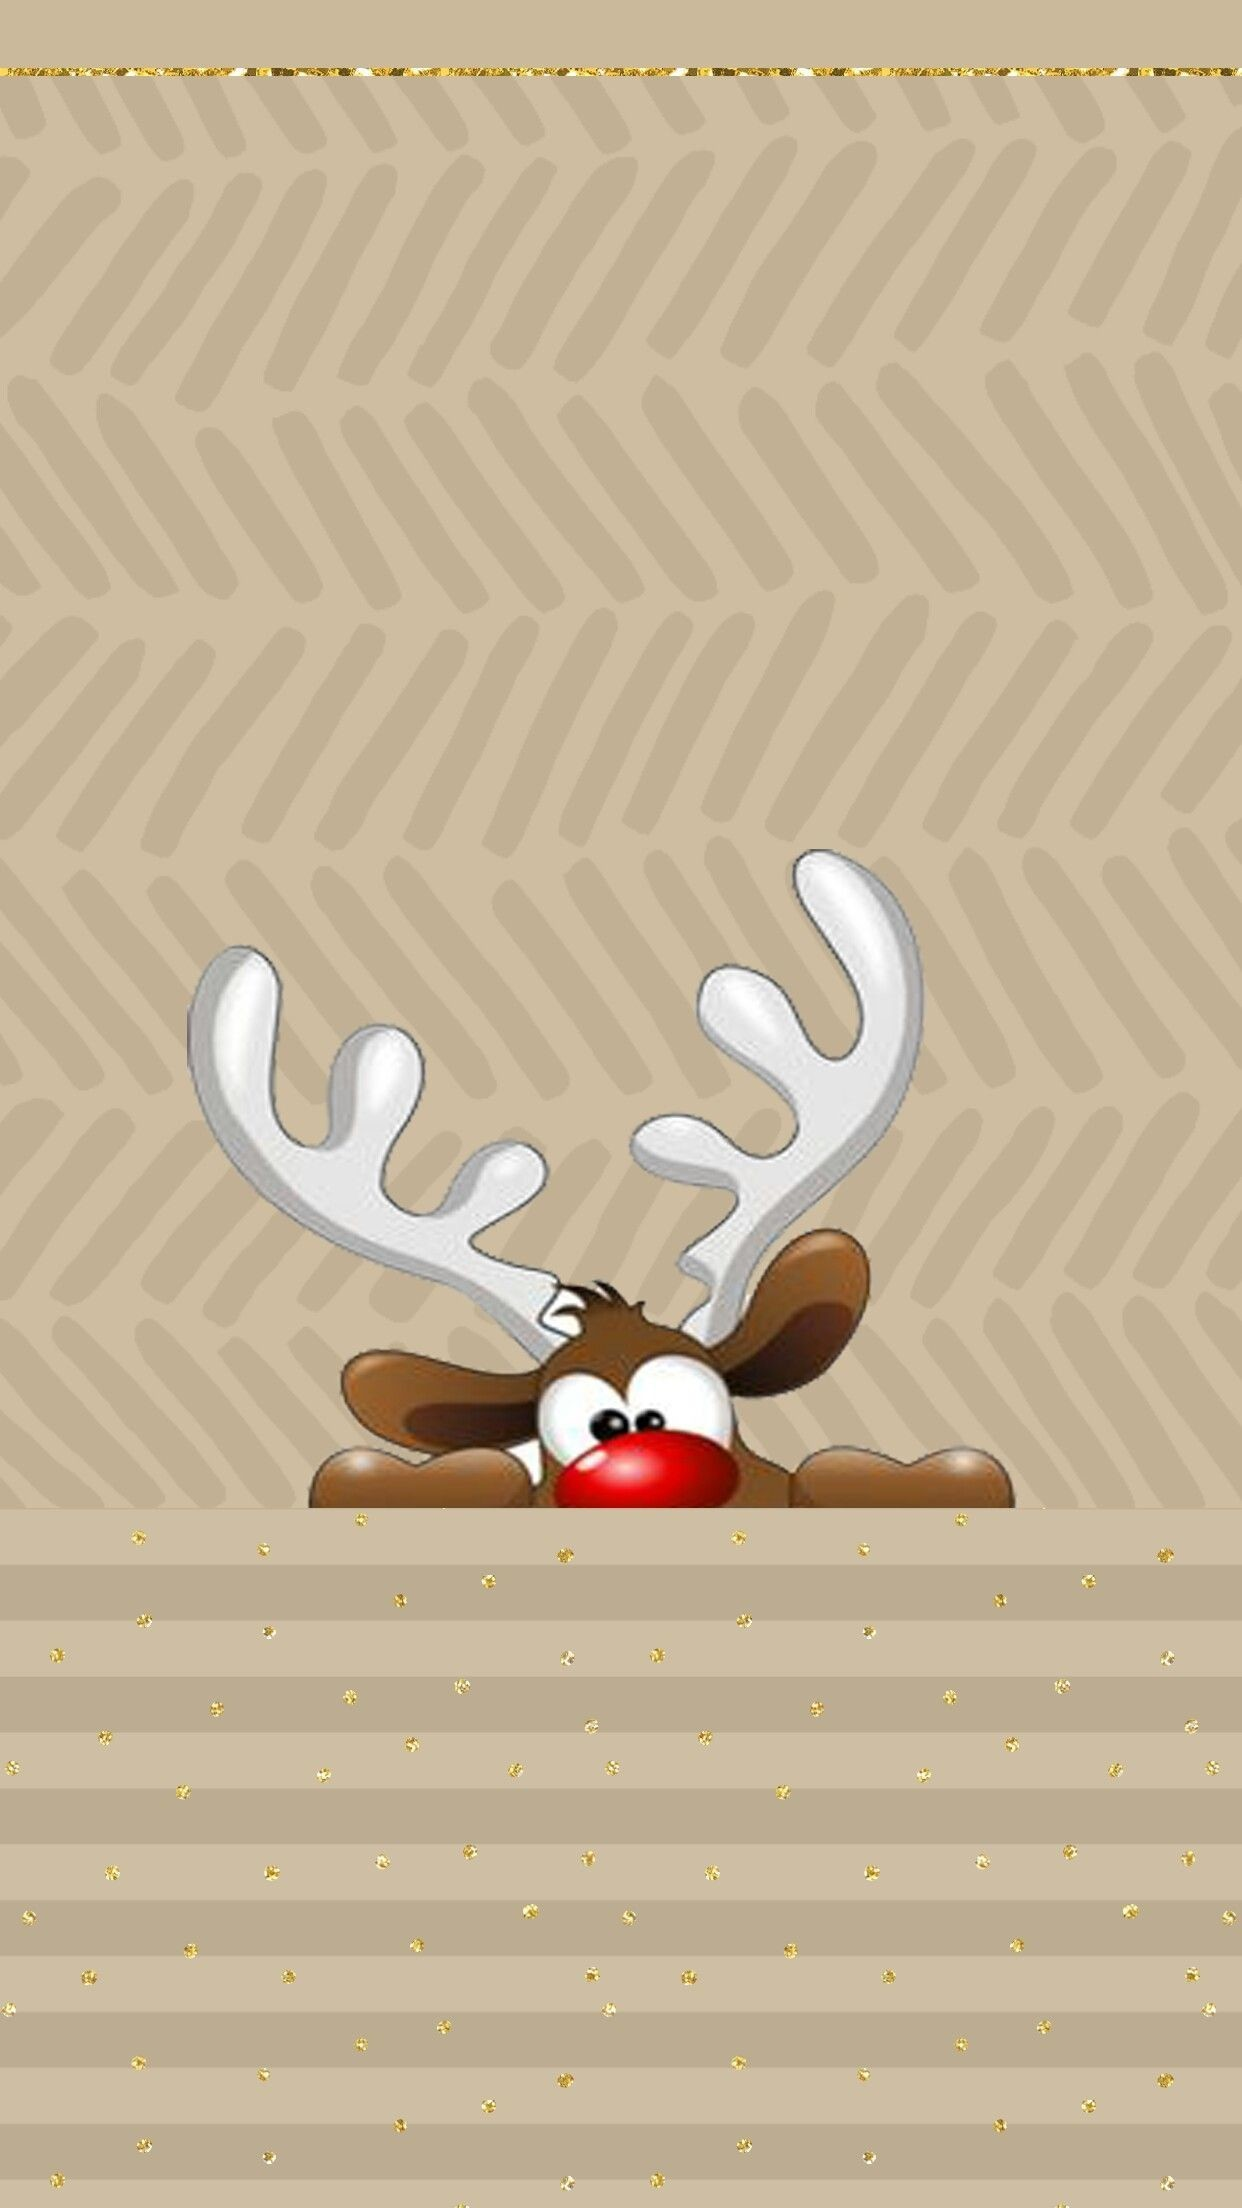 1281182 cute reindeer wallpaper 1242x2208 hd